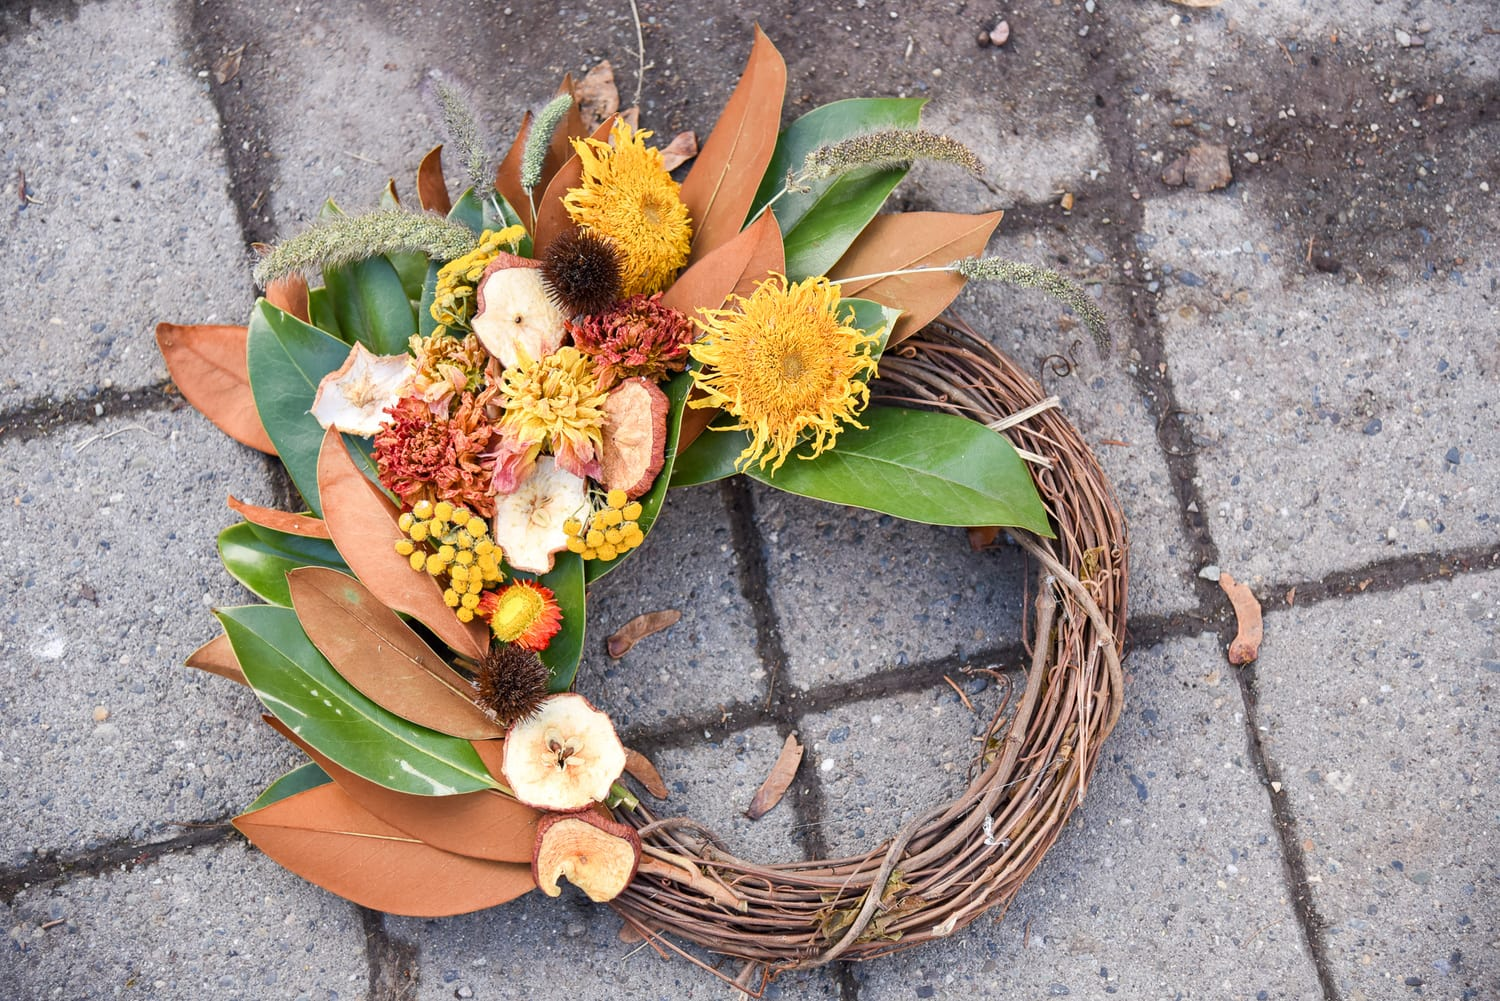 DIY Harvest Wreath